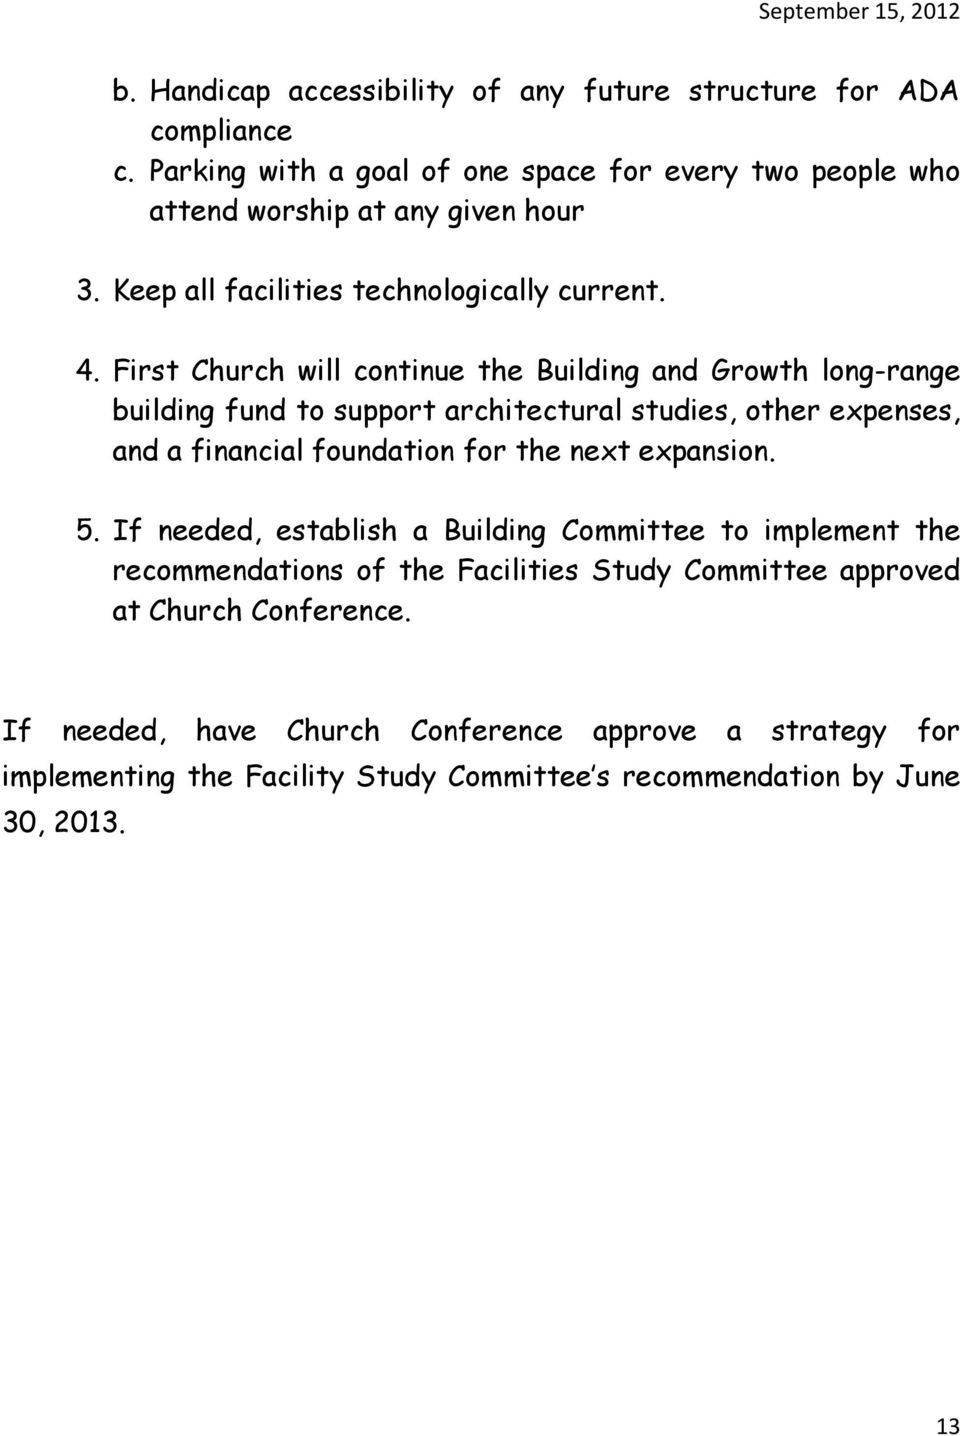 First Church will continue the Building and Growth long-range building fund to support architectural studies, other expenses, and a financial foundation for the next